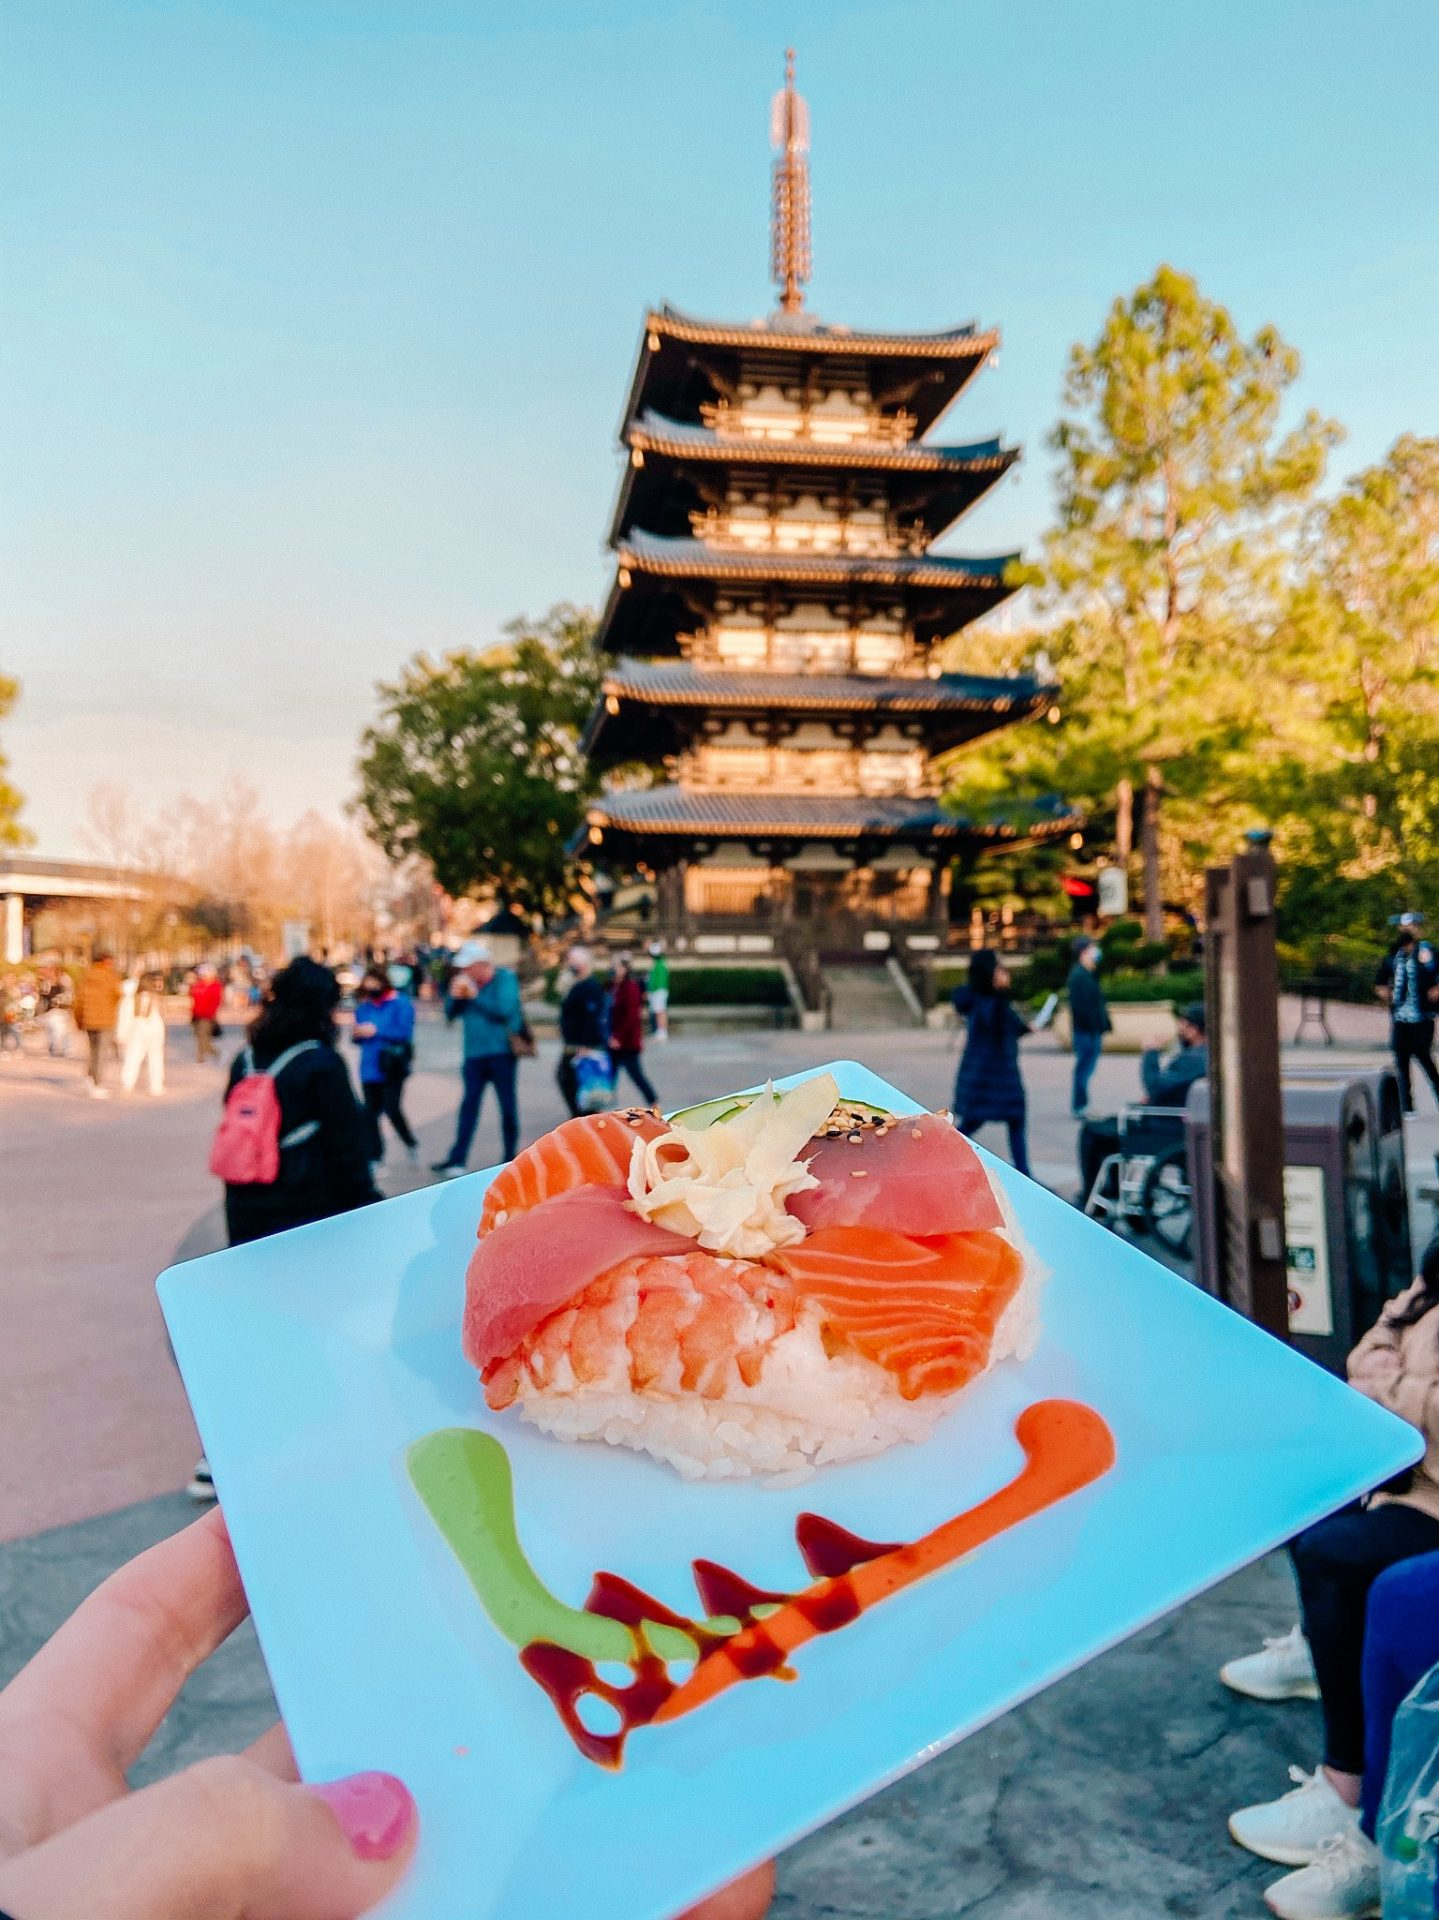 Sushi donut with raw fish on top of rice in the shape of a donut at Japan in Orlando Florida Disney World Epcot Theme Park